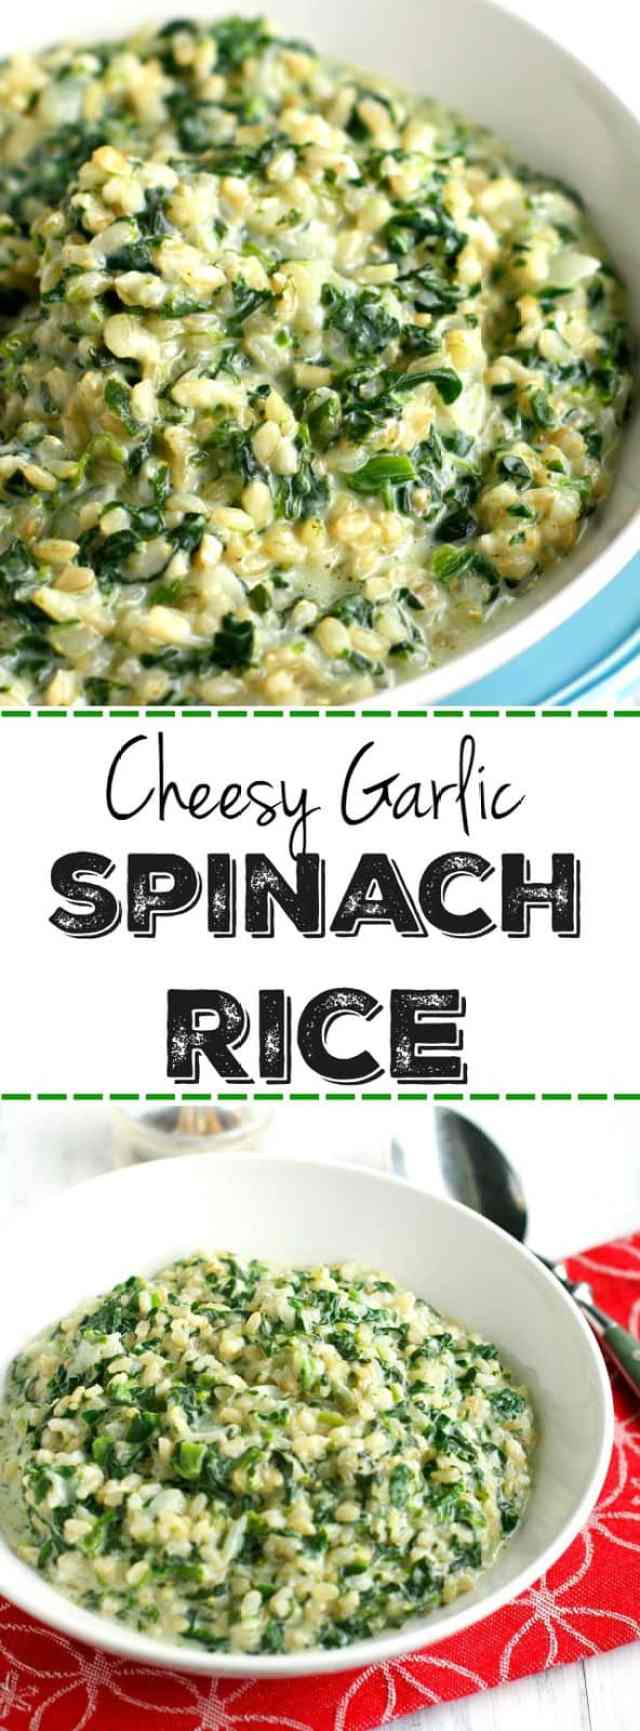 Cheesy garlic spinach rice is a winter comfort food staple! An easy one pot recipe.